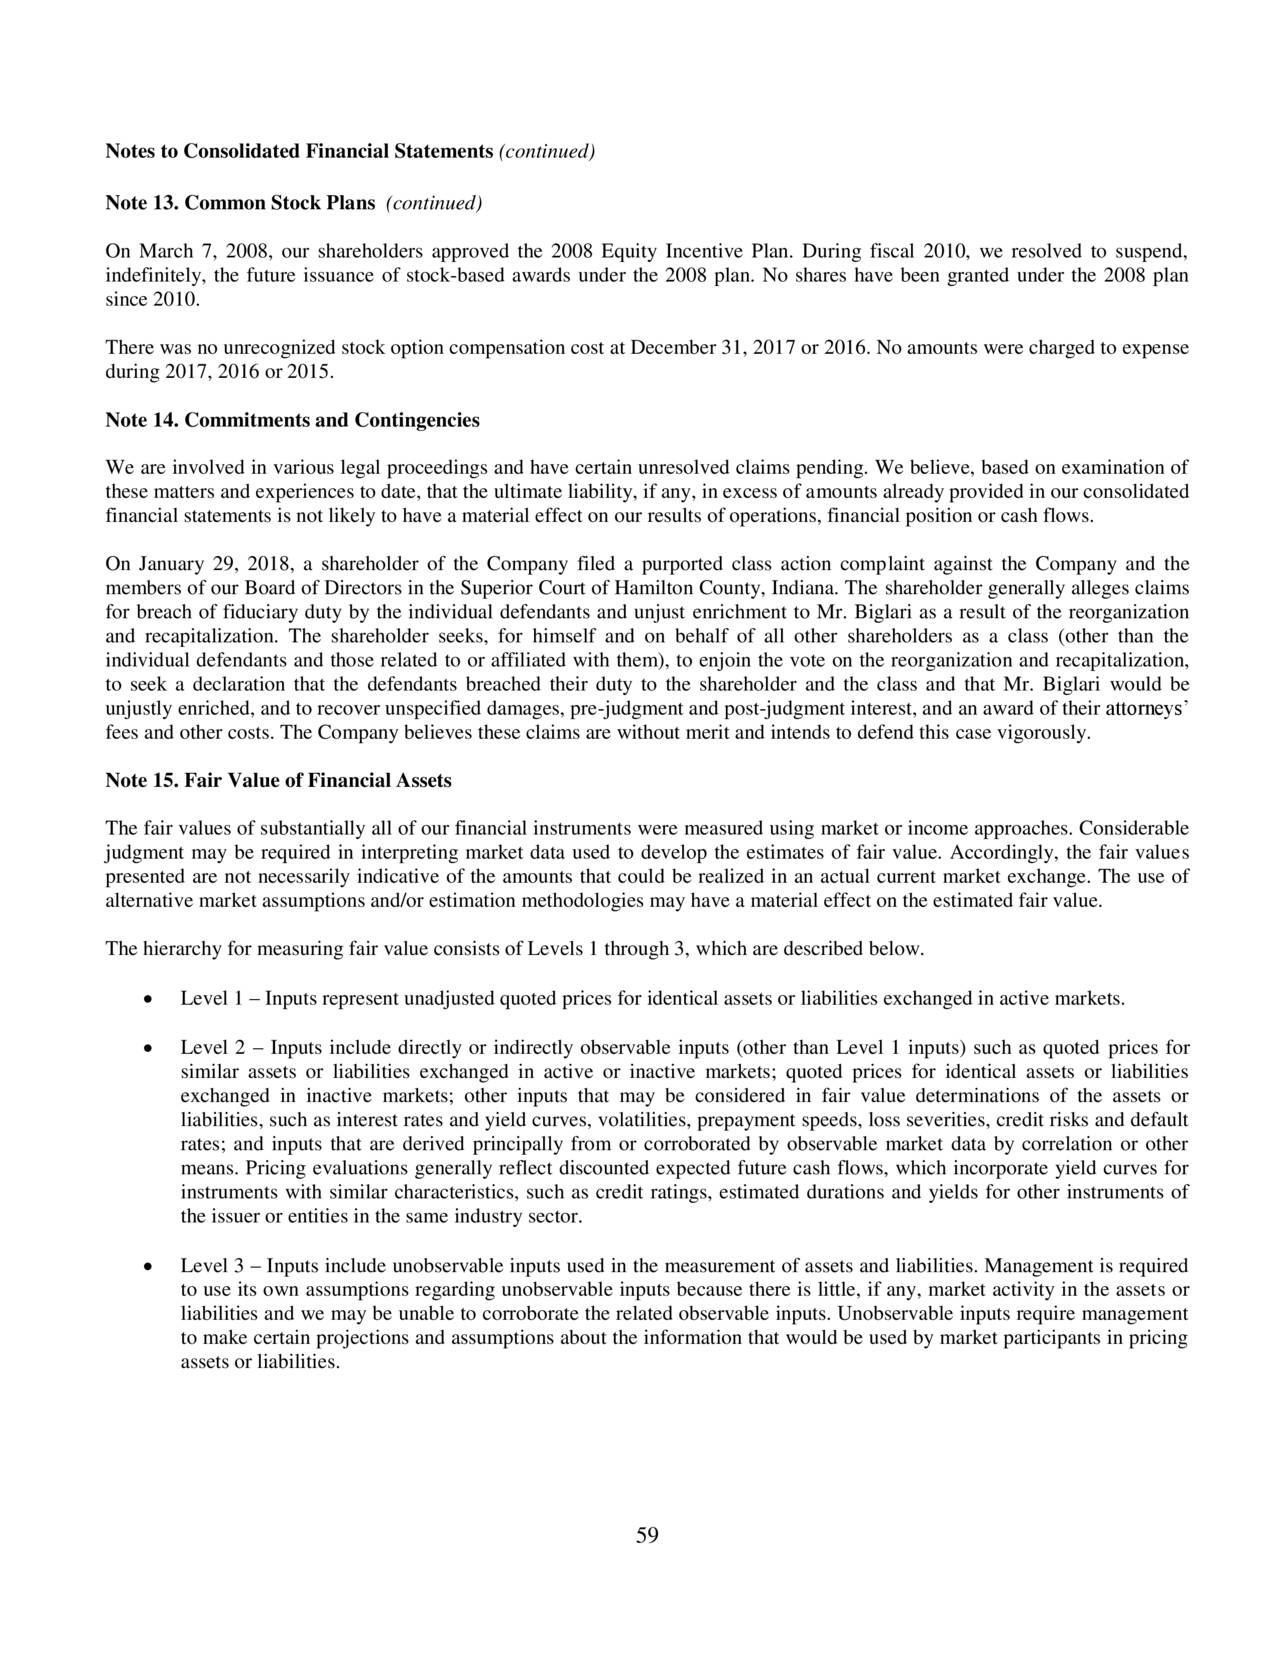 characteristics of the fund flow statements and its uses Statements, it is important that the elements in the cash flow statement relate to   respect to the following quality features of financial reporting as described in the   companies use as the reference point for the operational cash flow prepared.